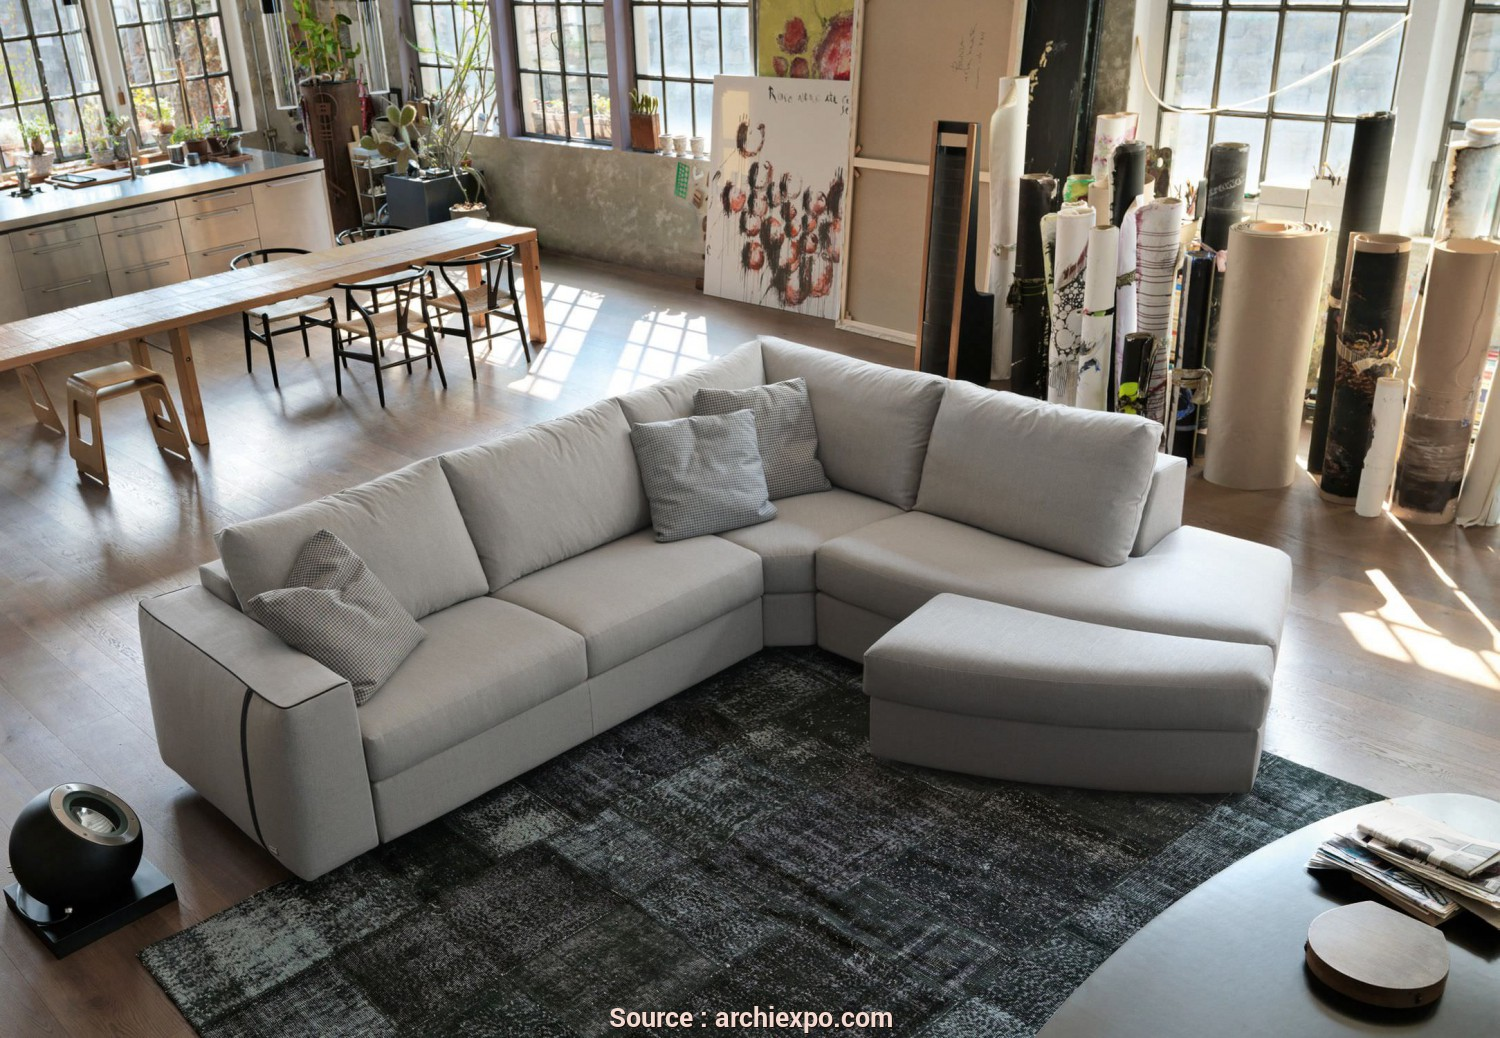 Divano Nevada Doimo, Incredibile Corner Sofa /, / Contemporary / Fabric, LIKE, Doimo Salotti